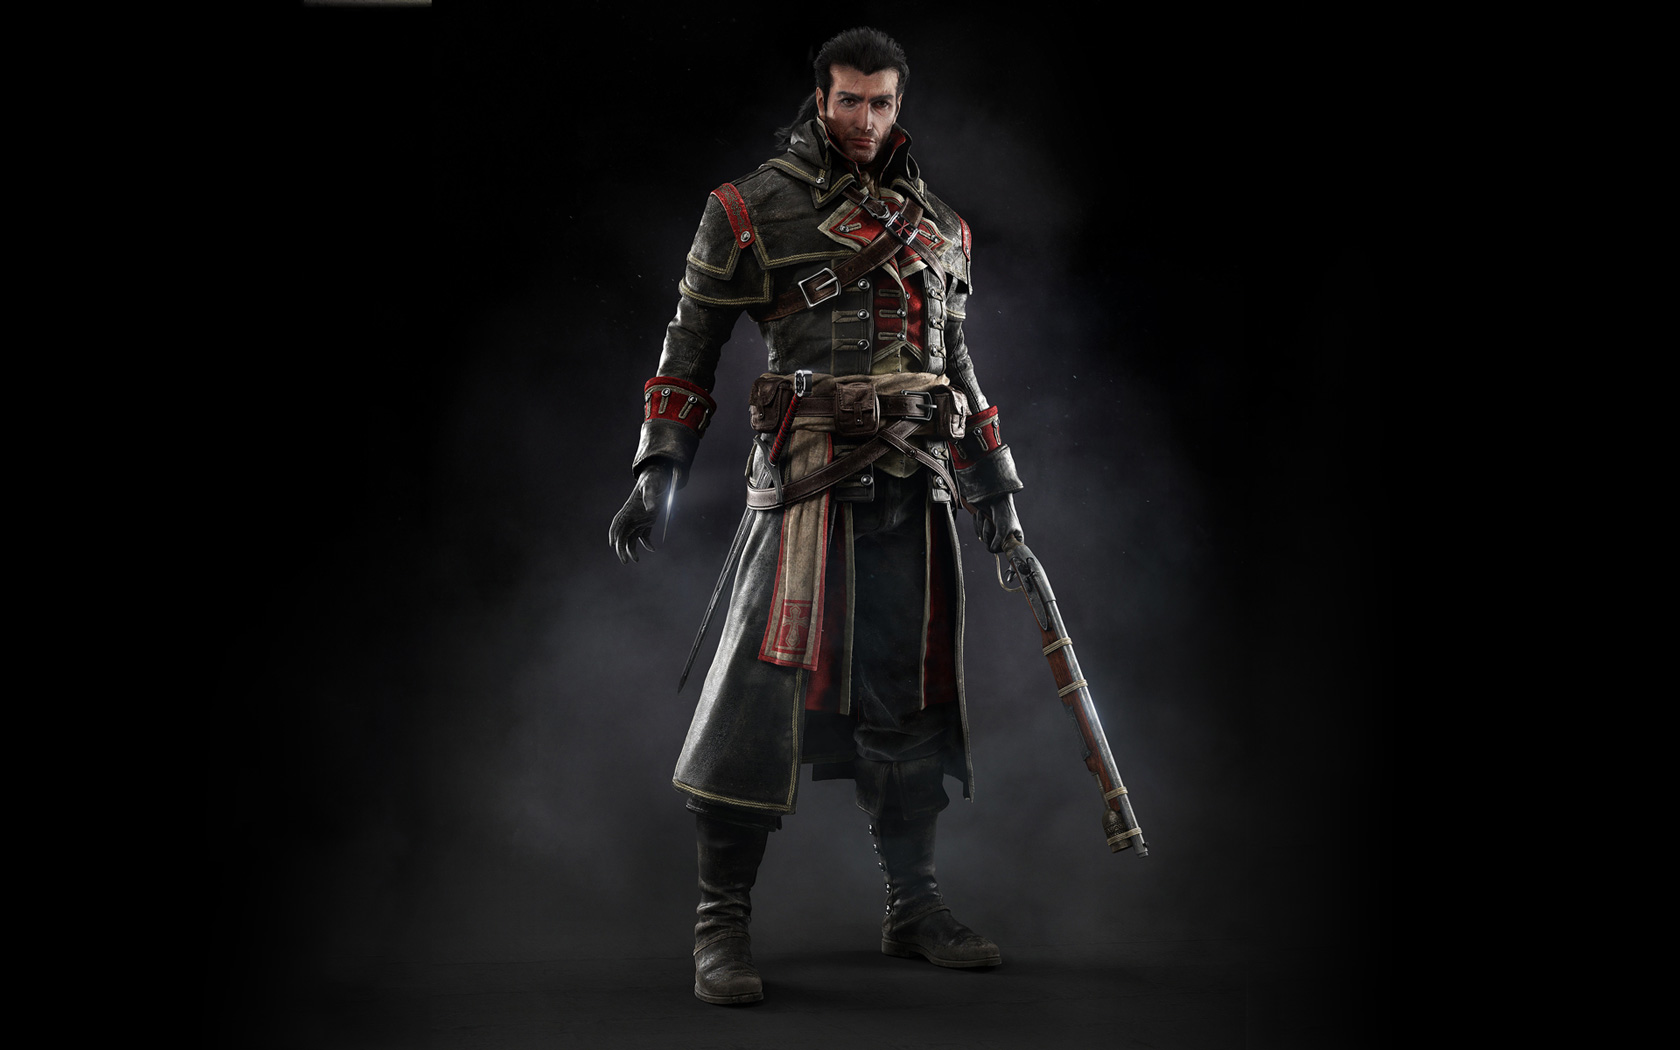 Assassin's Creed: Rogue Wallpaper in 1680x1050